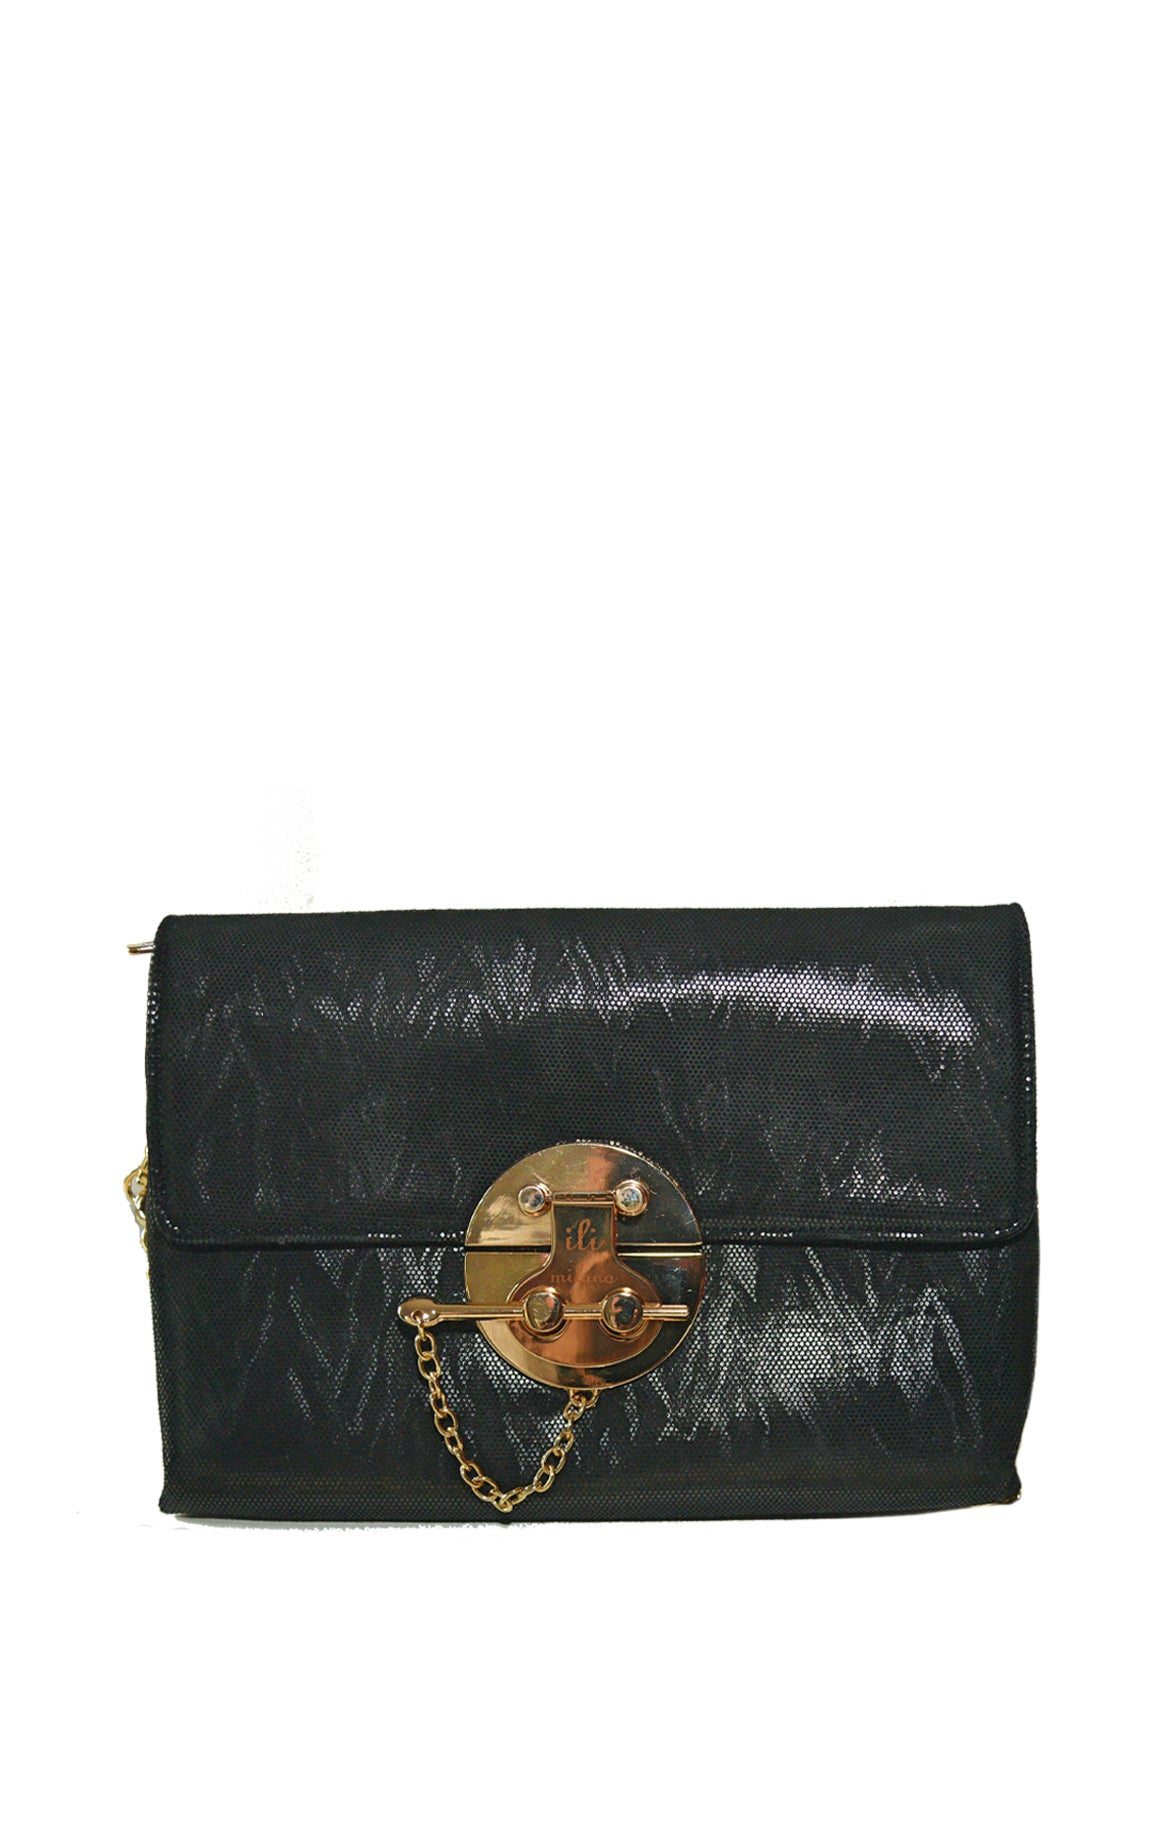 Black & Gold Key Medium Bag